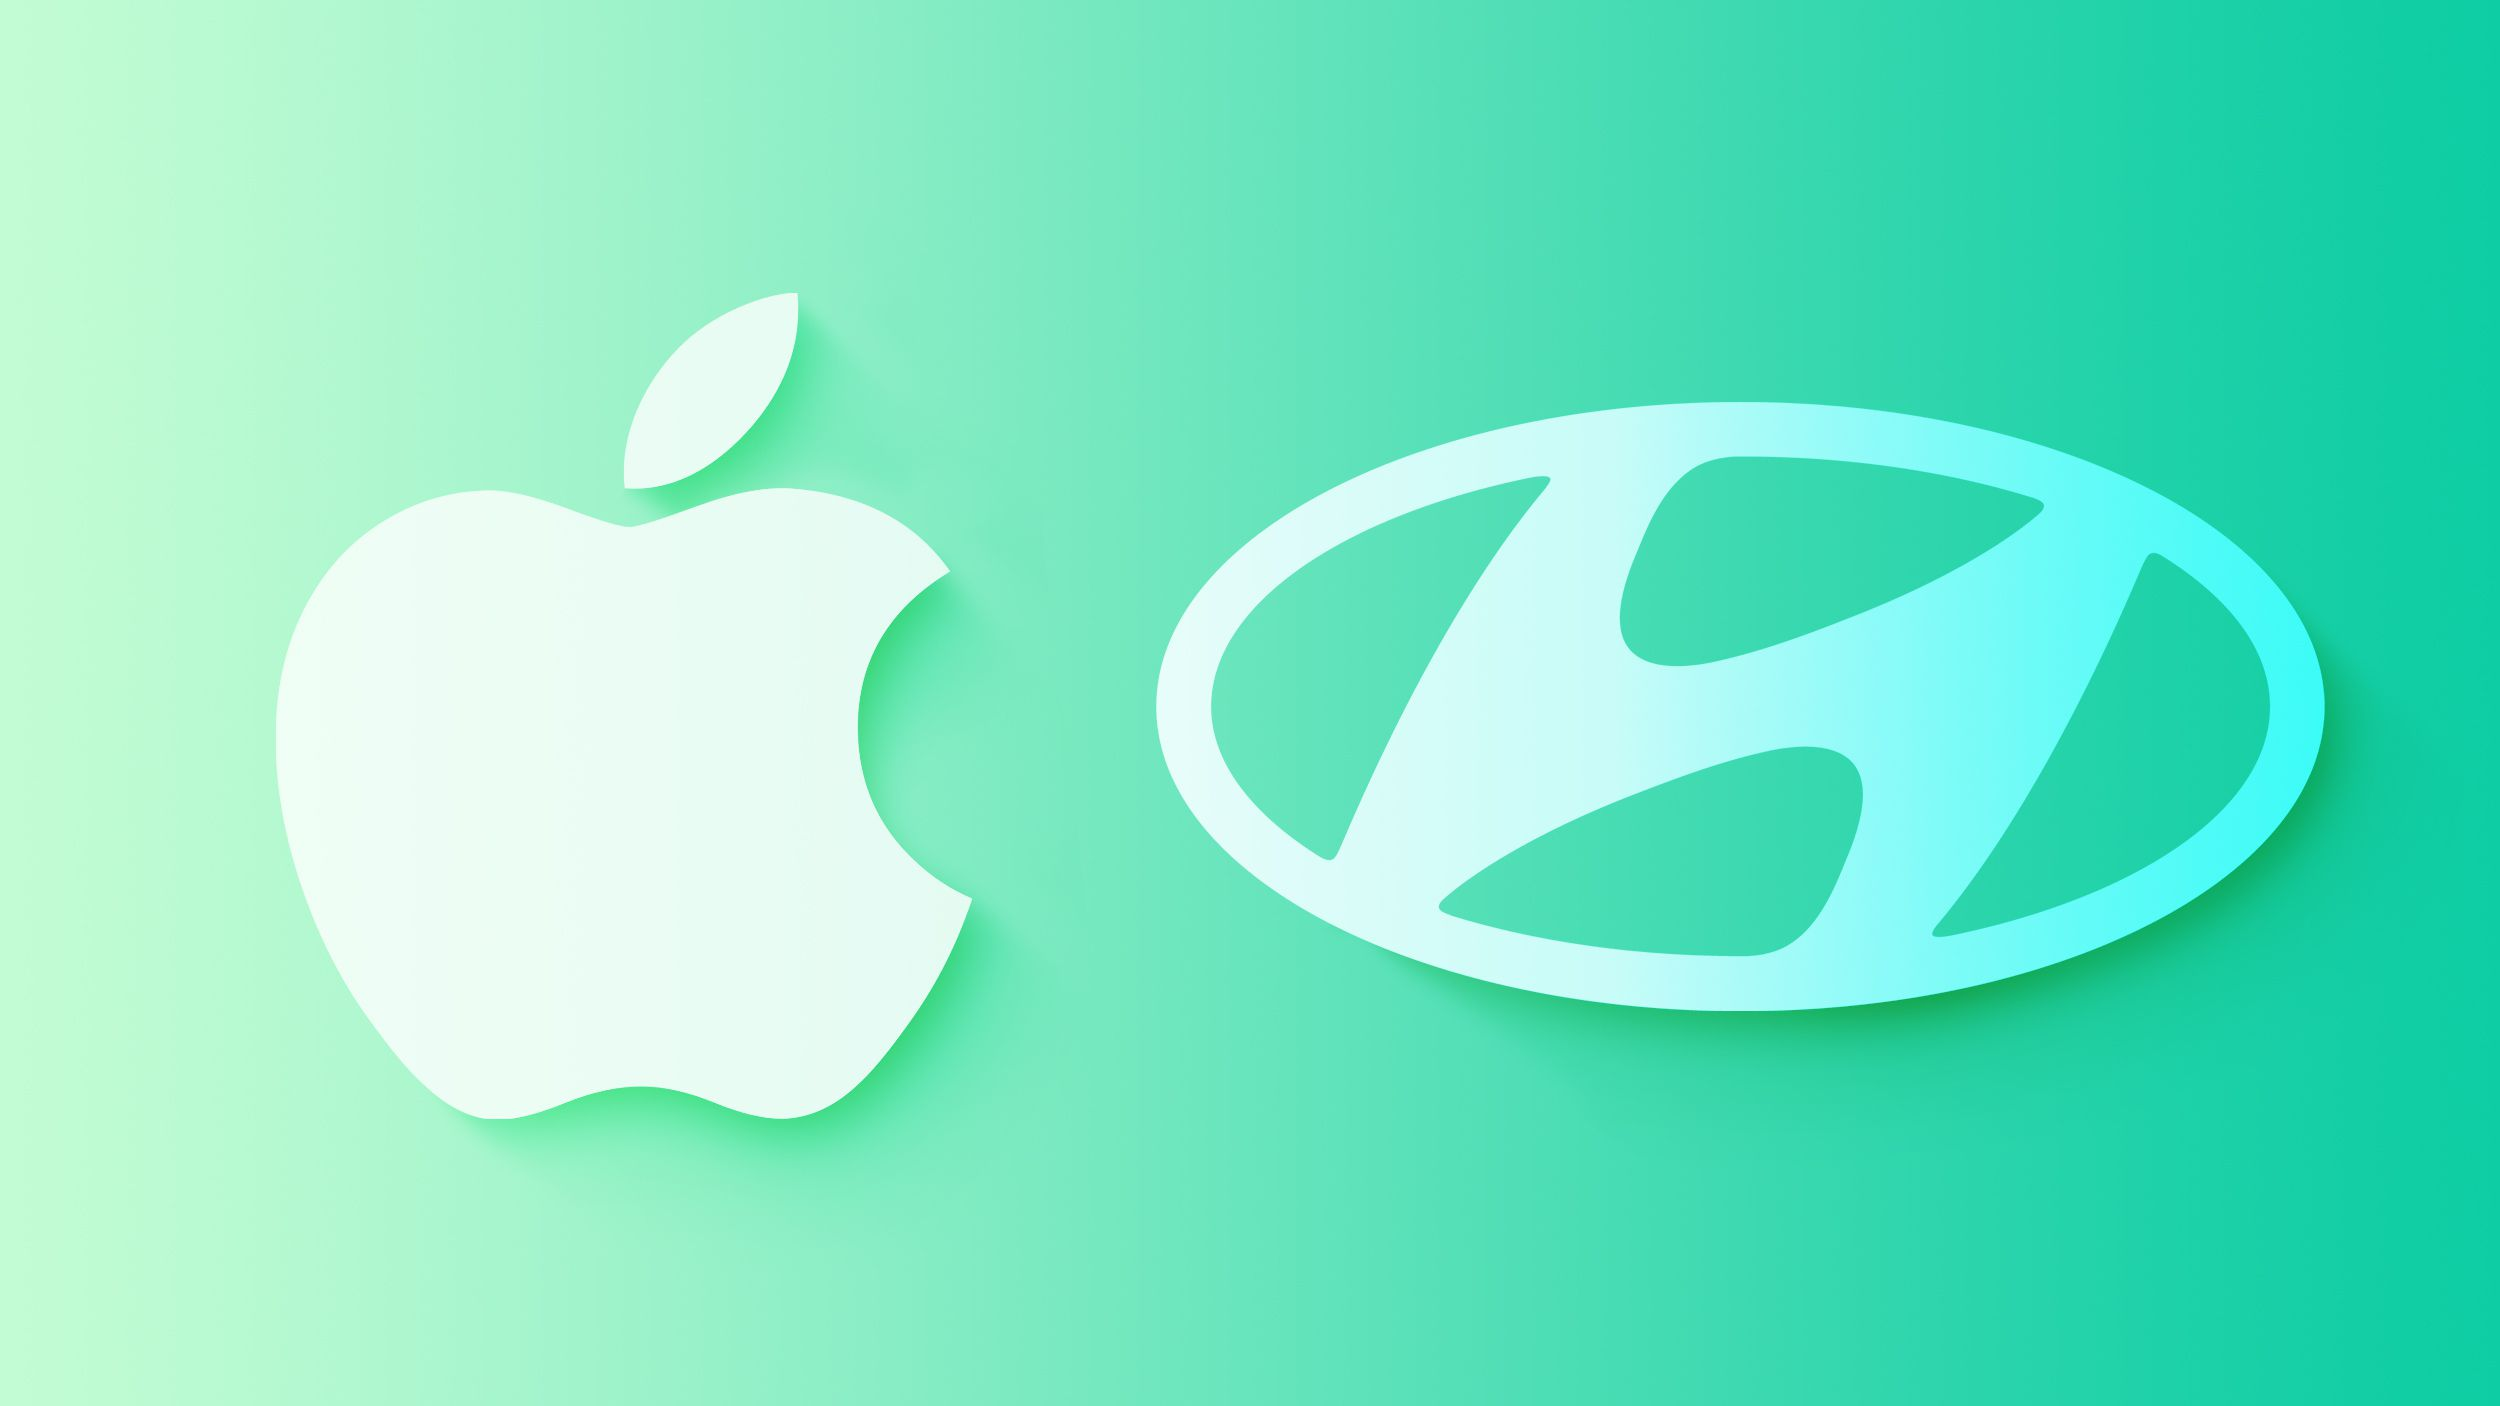 Hyundai and Kia Now Say They Aren't in Discussions to Develop Apple Car